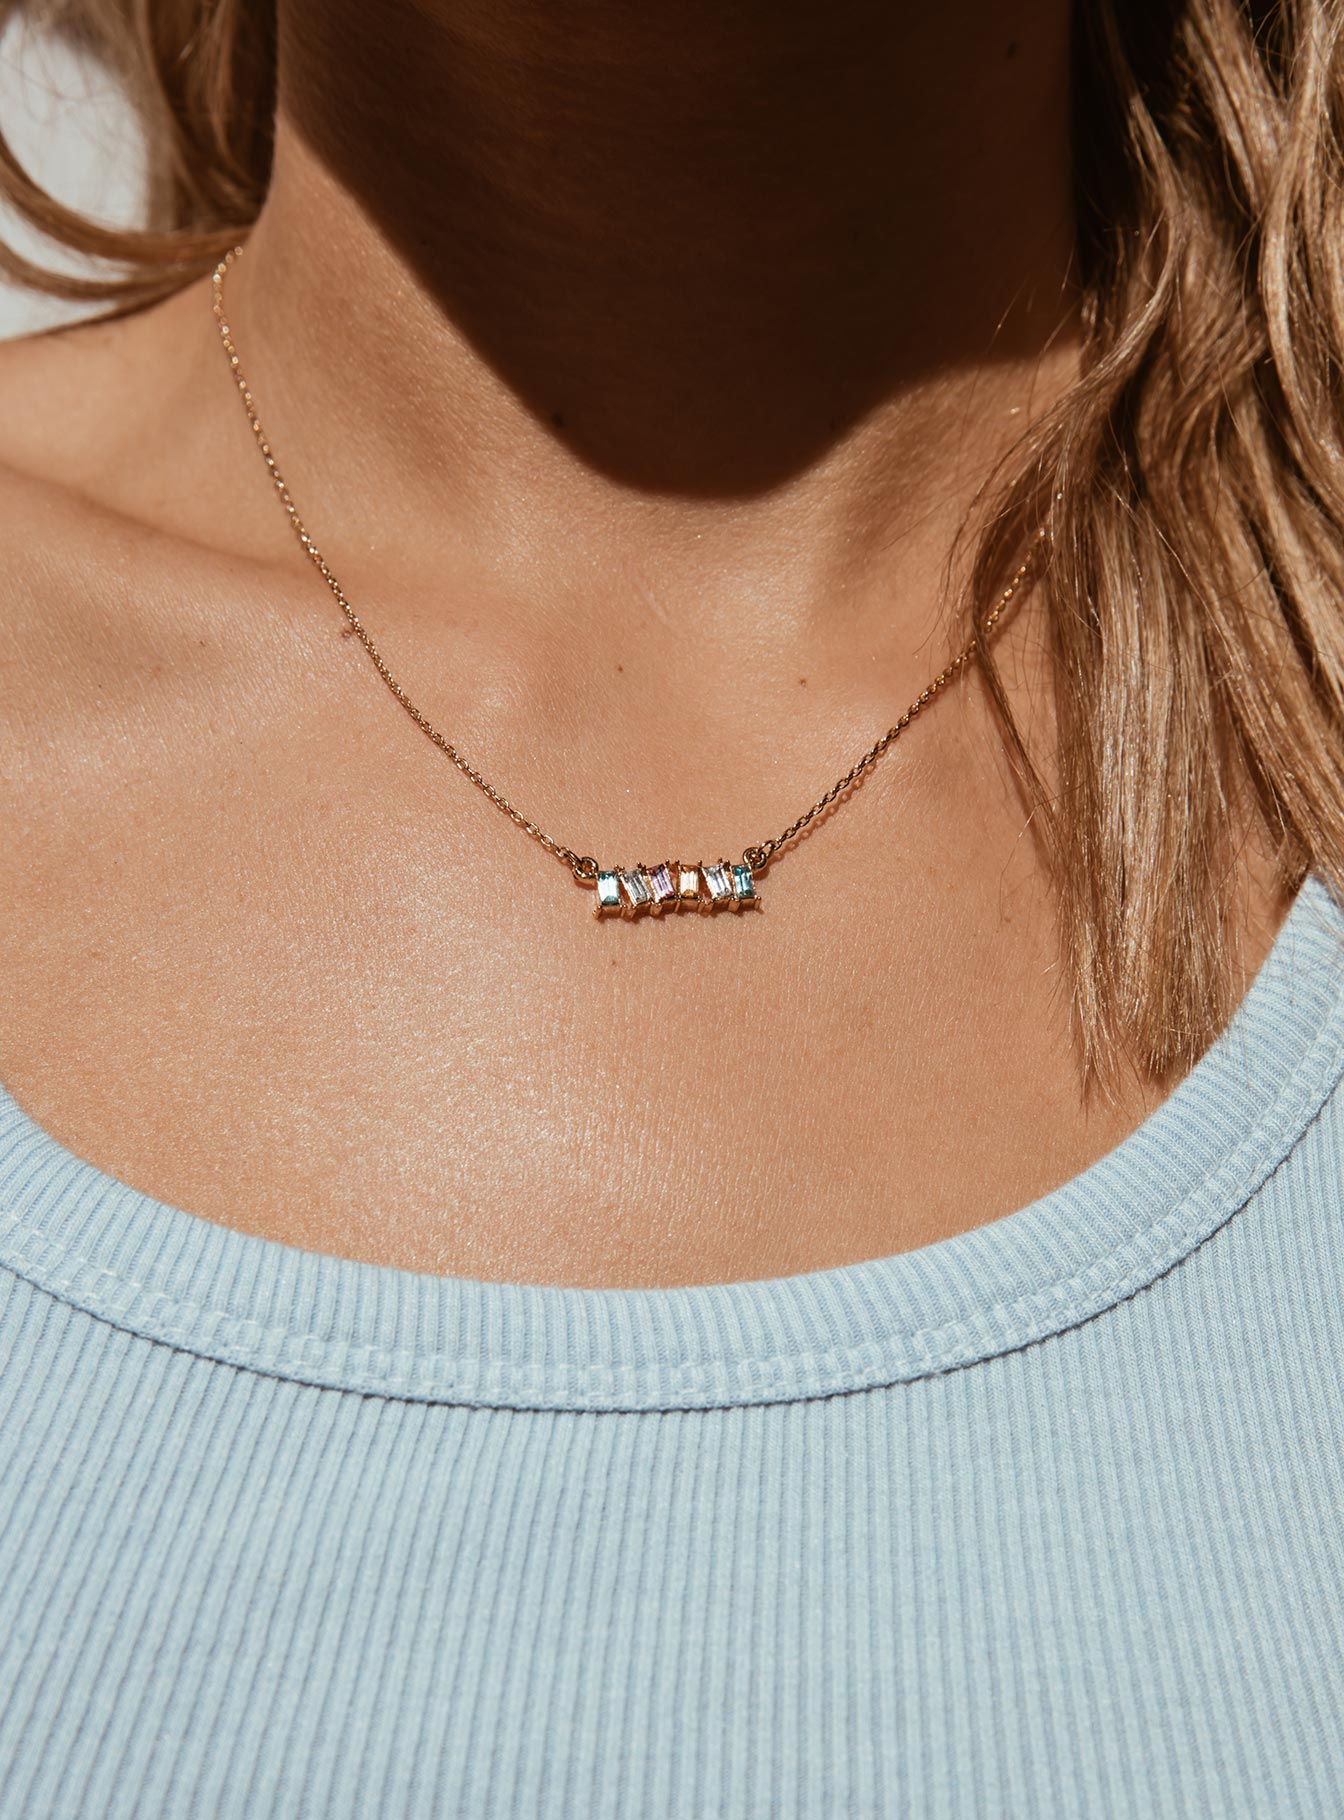 Multi Color Bar Dainty Necklace